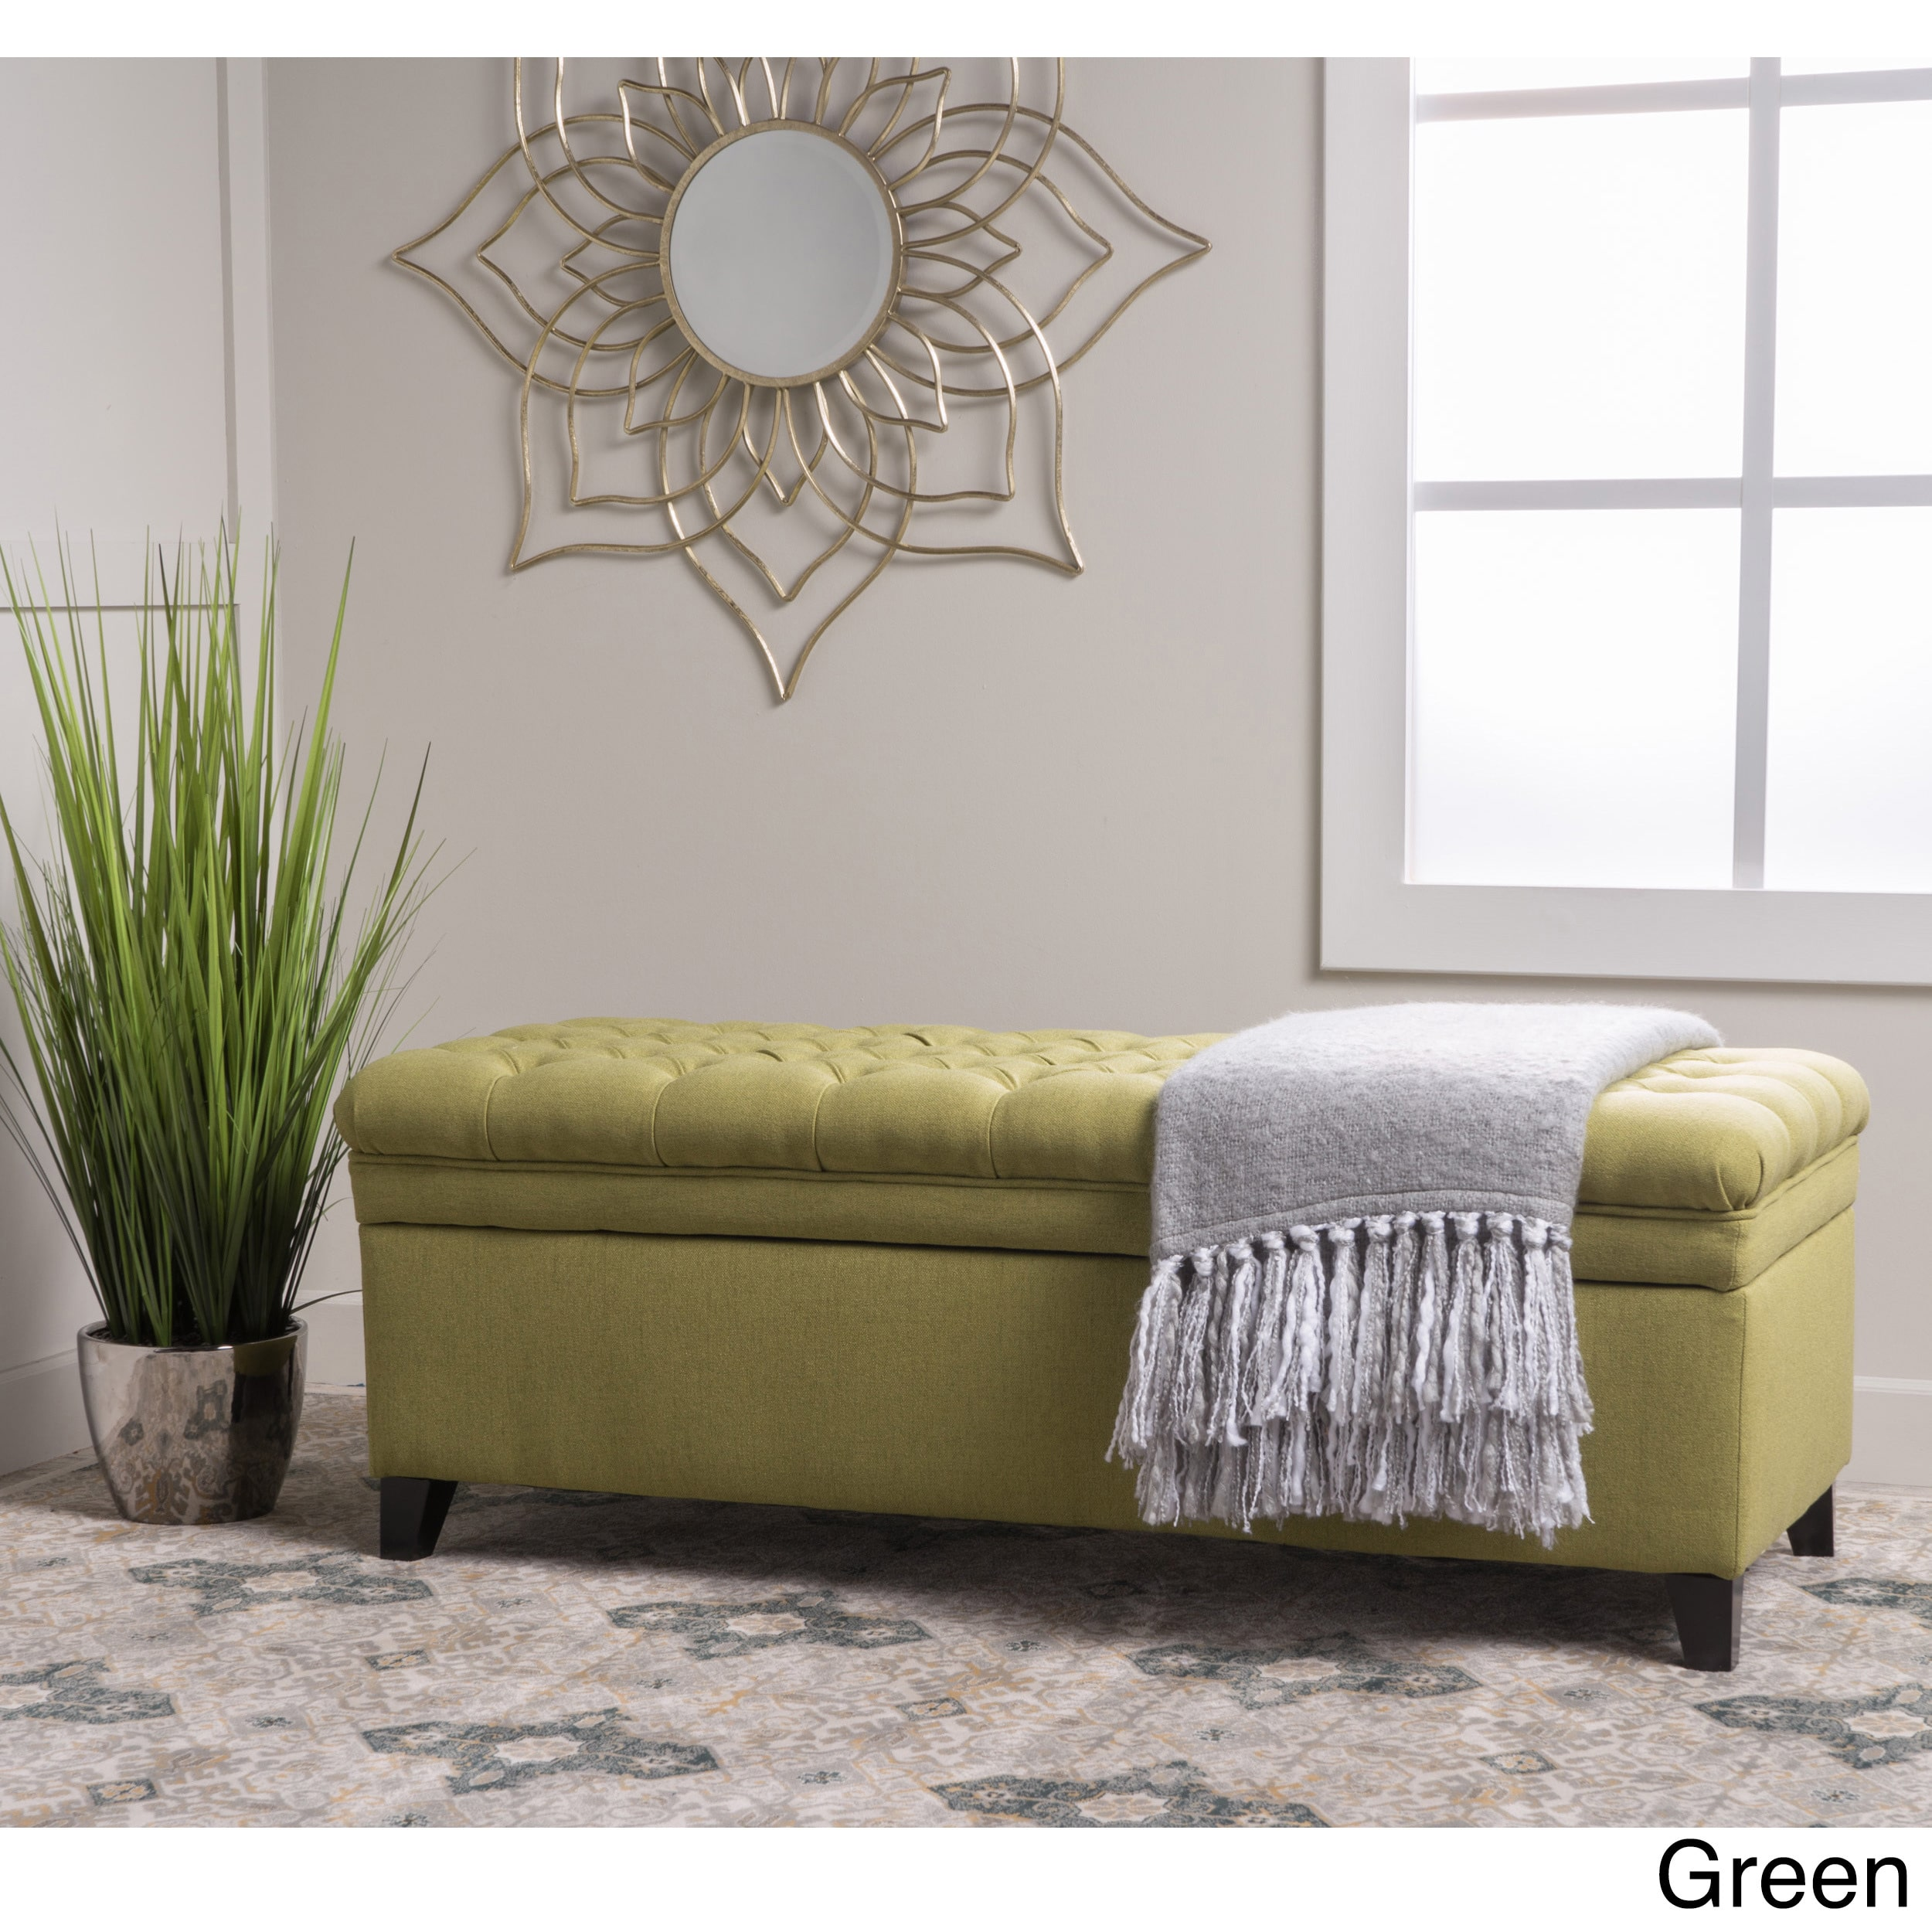 Christopher Knight Home Hastings Tufted Fabric Storage Ottoman Bench by